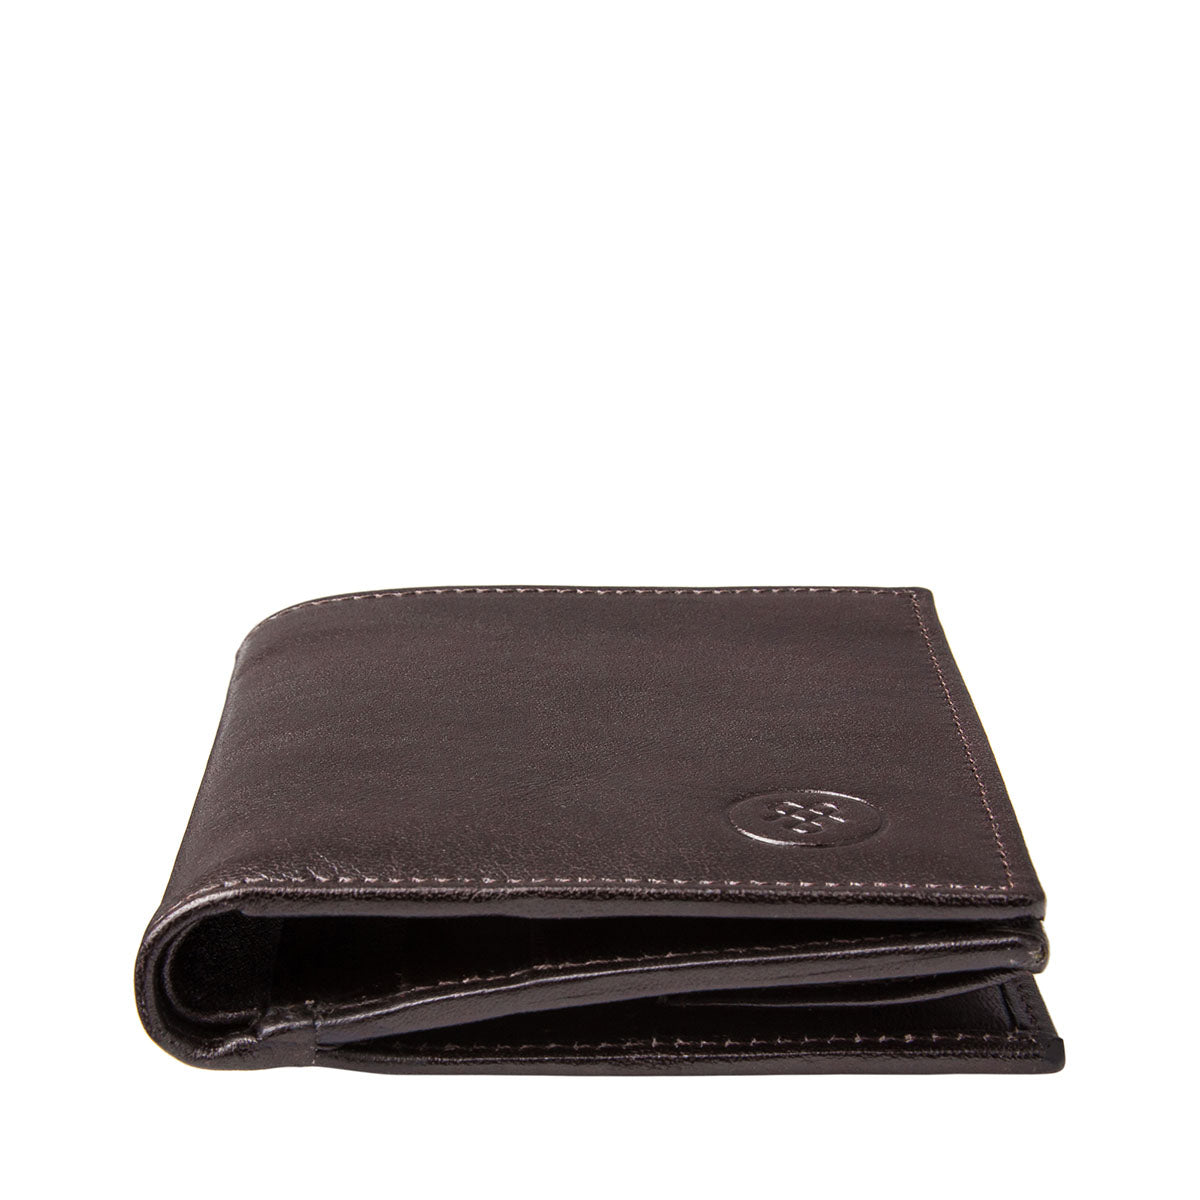 Image 6 of the 'Rocca' Dark Chocolate Veg-Tanned Leather Wallet